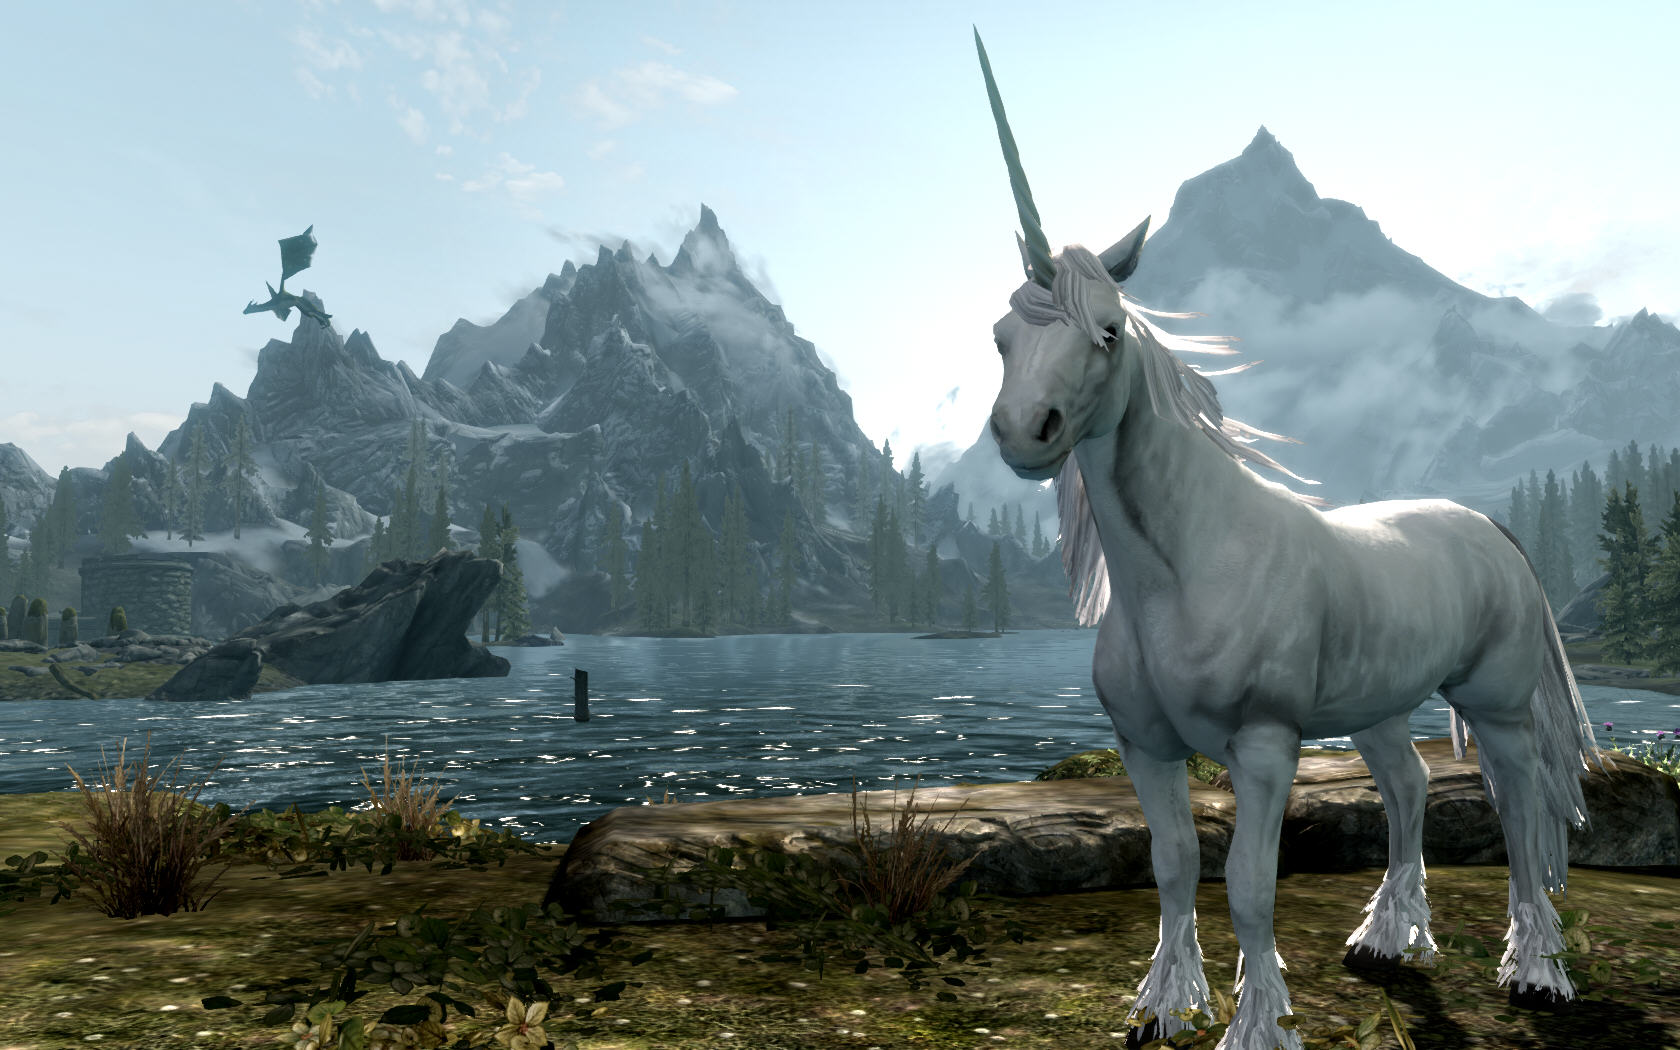 Skyrim and a Unicorn